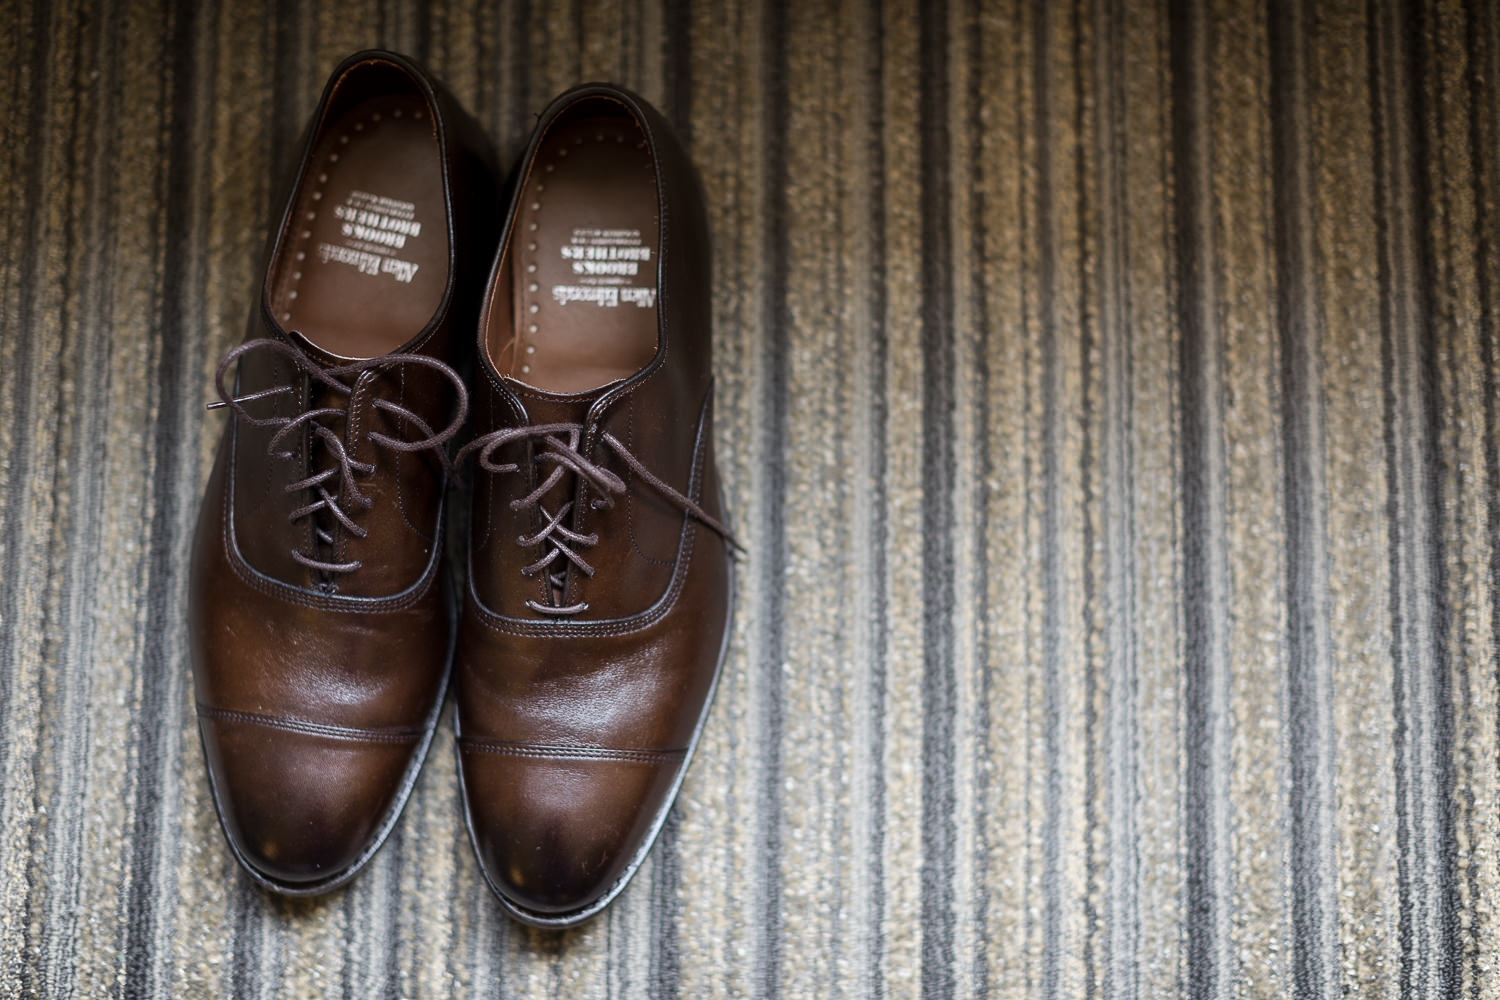 A photo of the groom's wedding shoes by wedding photographer Stina Booth of Vermont